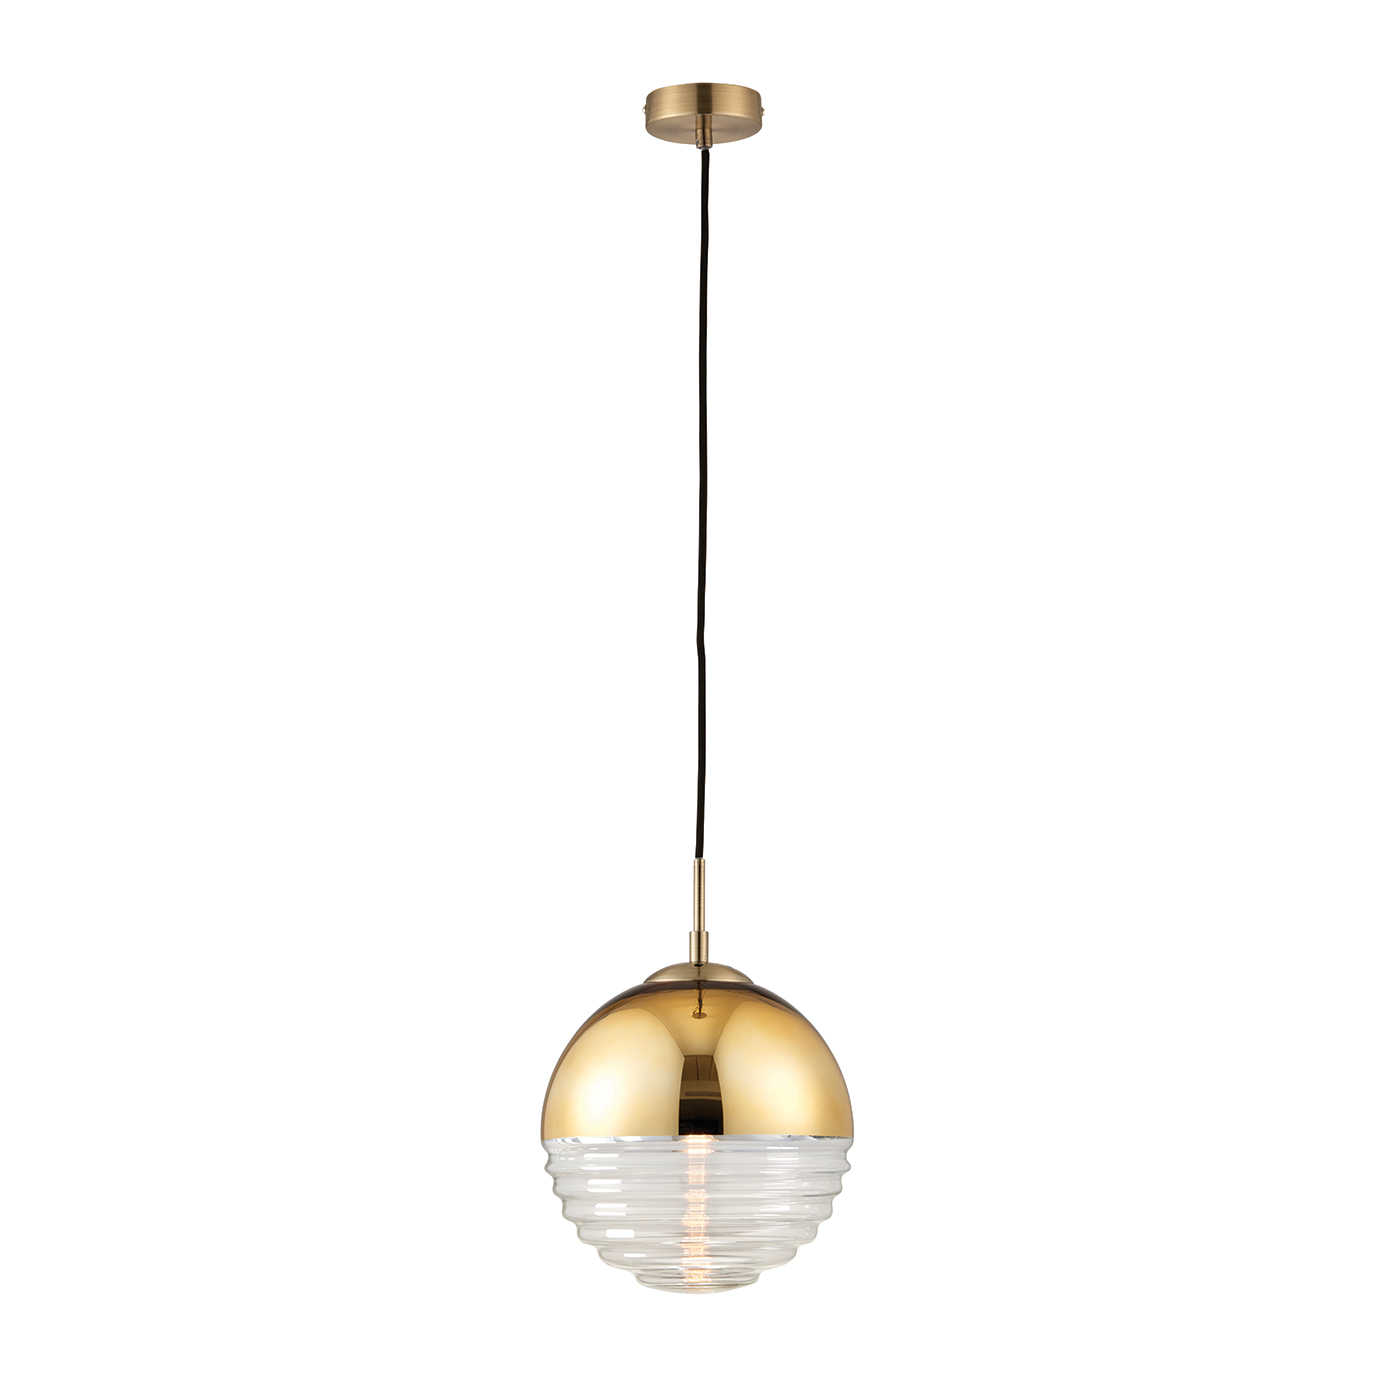 Endon Paloma pendant 1x 40W Gold effect & clear ribbed glass Thumbnail 1